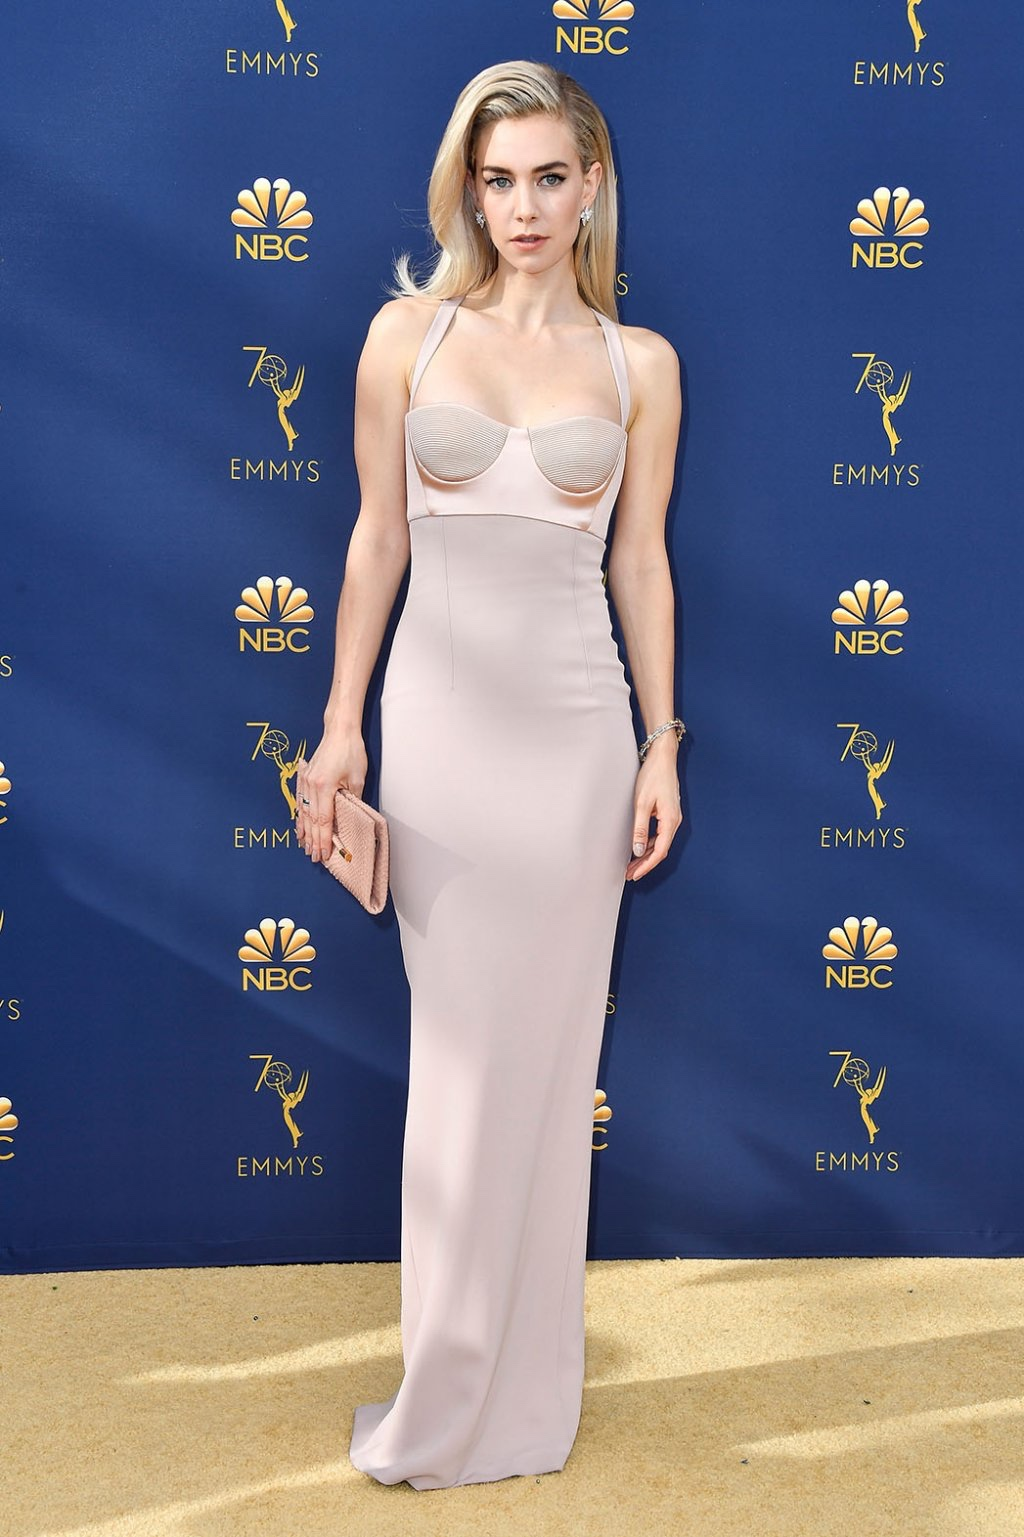 Vanessa Kirby in Tom Ford, 70th Annual Primetime Emmy Awards, Betty White, Emmys 2018, Fashion, Featured, Glenn Weiss, Hannah Gadsby, highlights, Jav Svendsen, Online Exclusive, Style, The Marvellous Mrs. Maisel, top moments, We solved it, Diversity